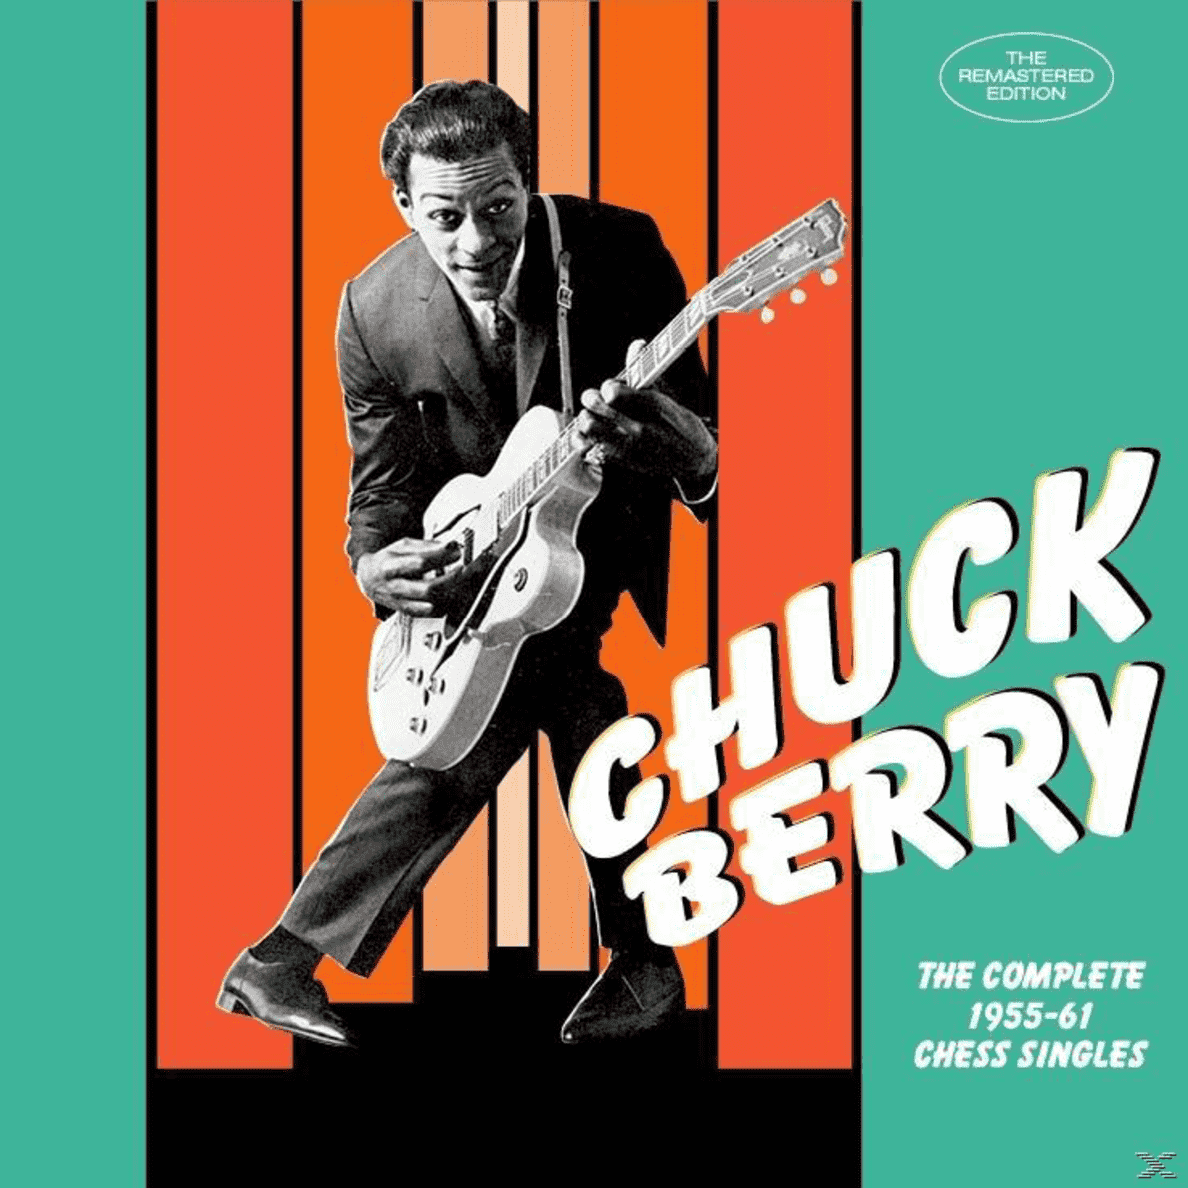 The Complete 1955-1961 Chess Singles Chuck Berry auf CD